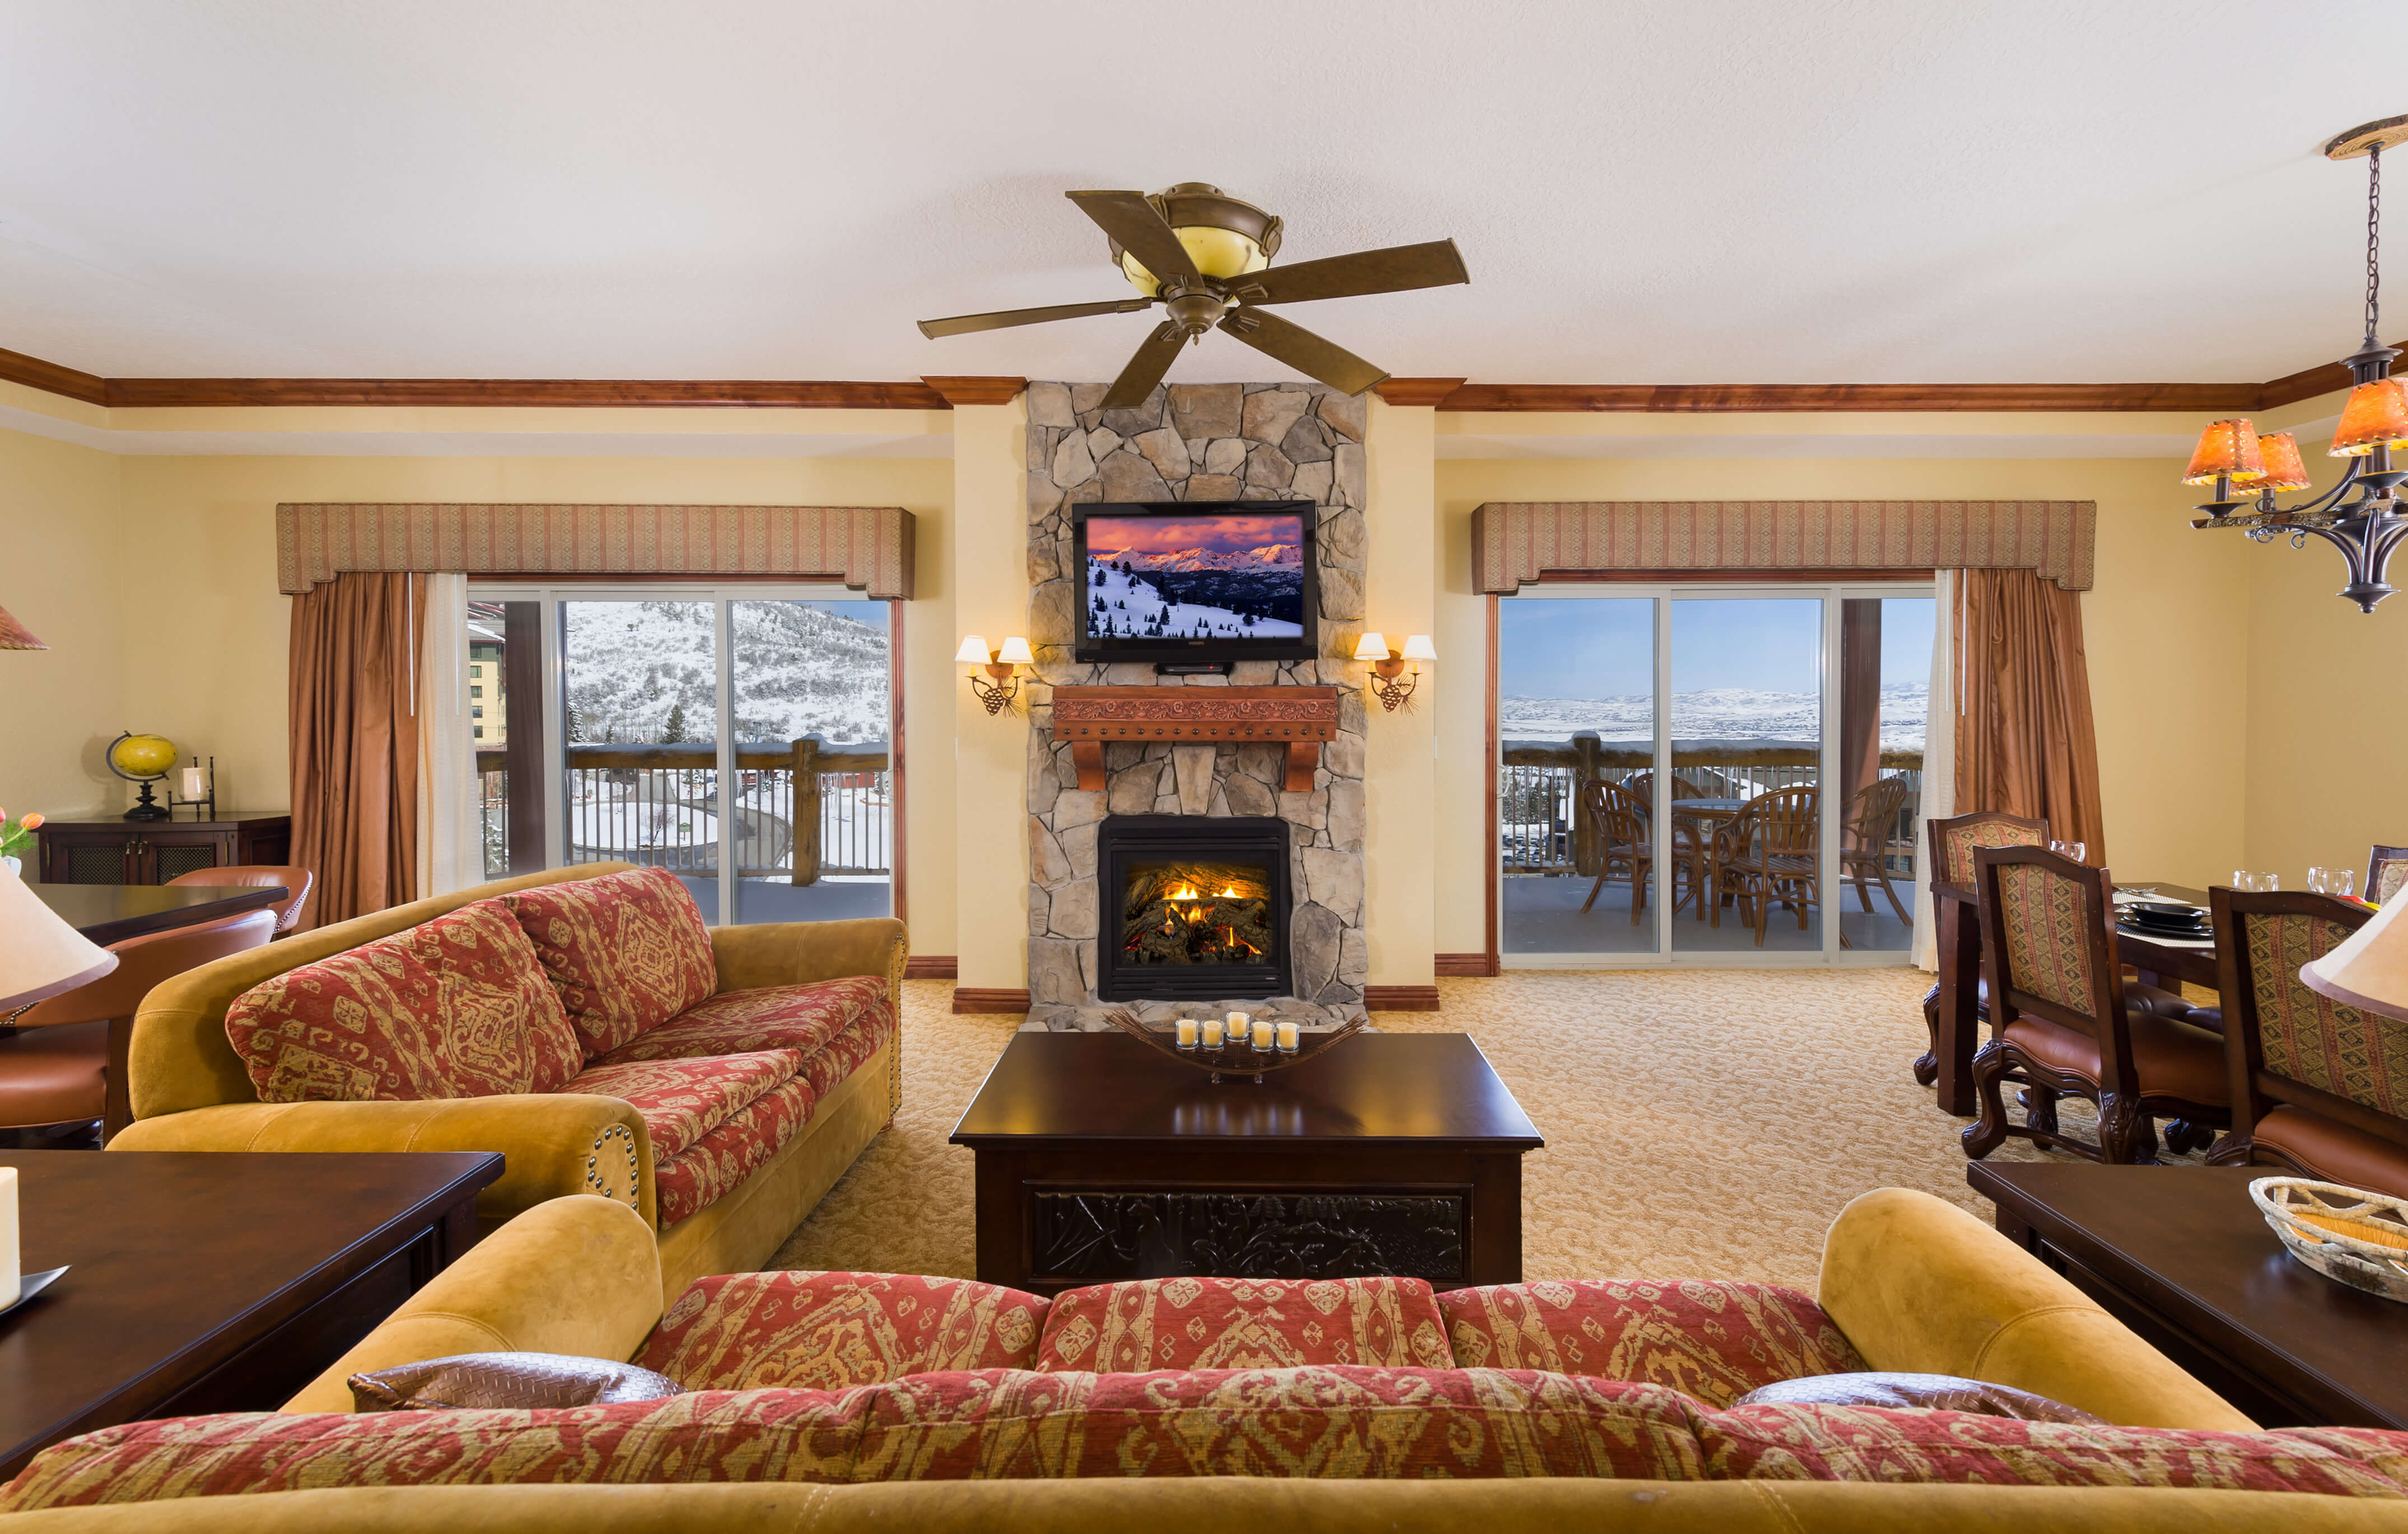 Wedding Accommodations In Park City - Living Room of Park City Villa